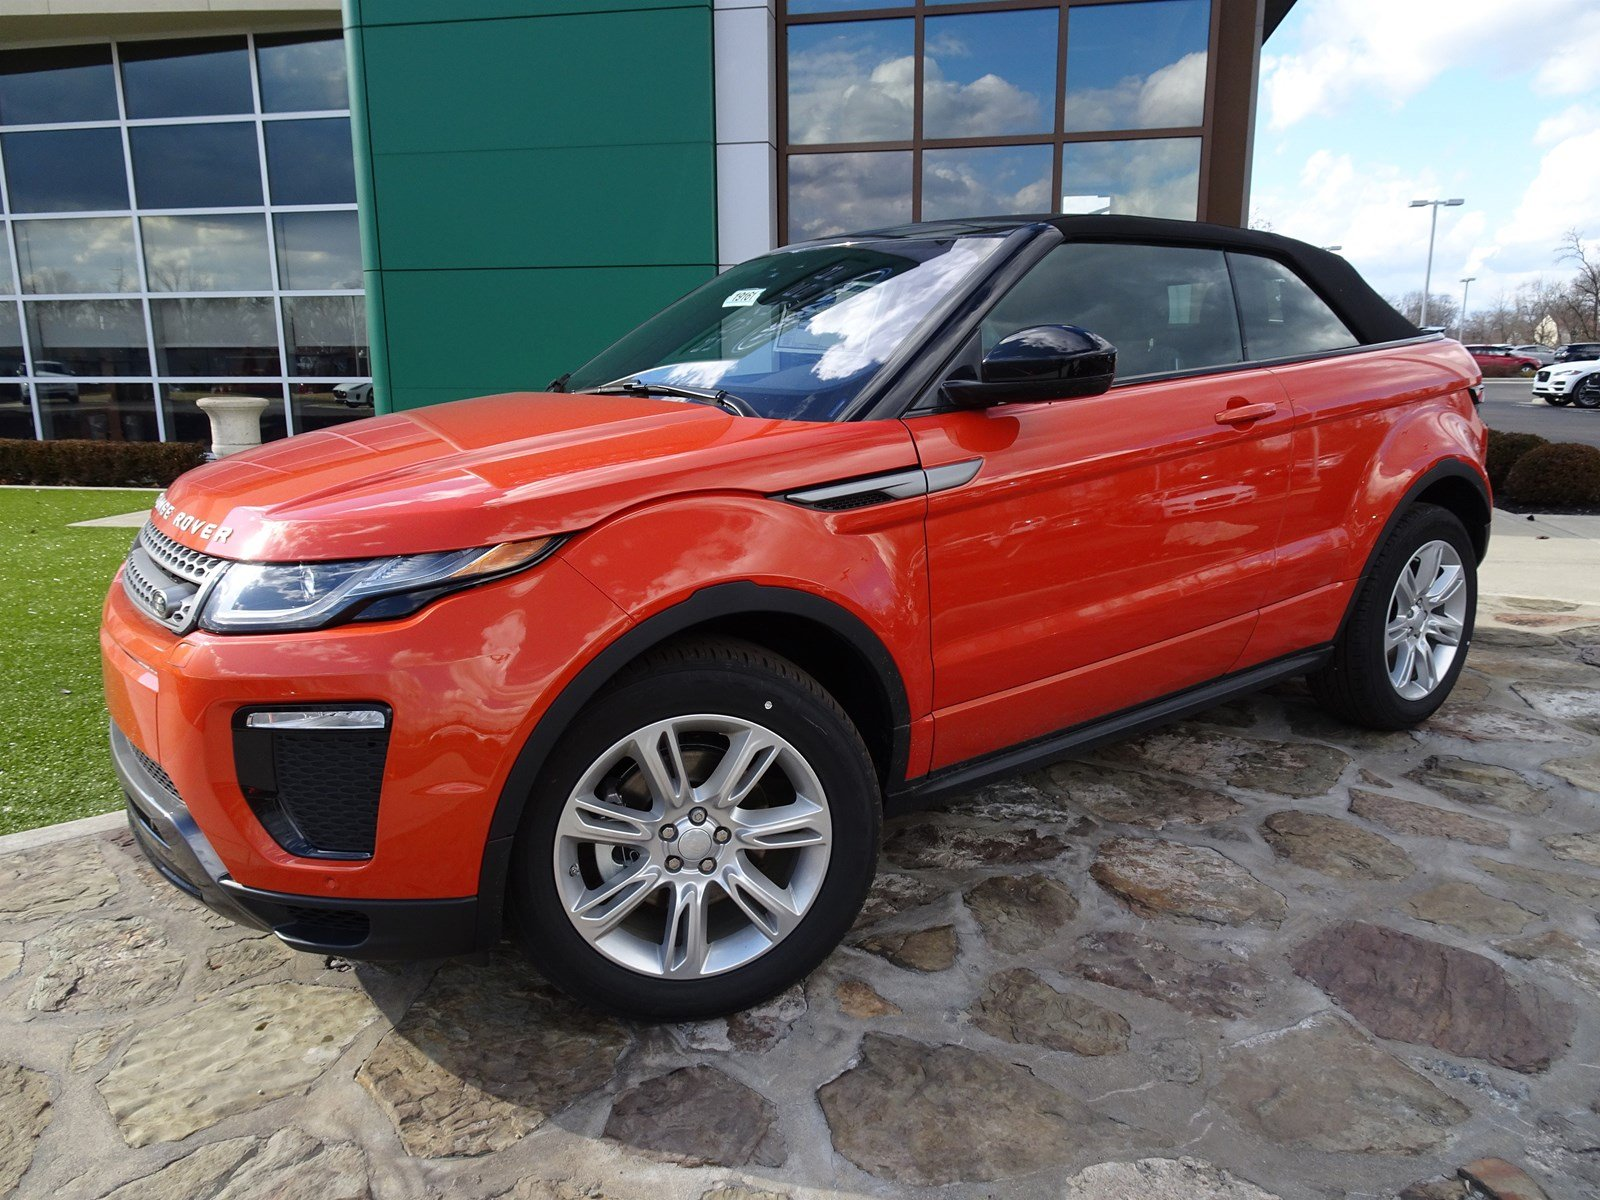 New 2019 Land Rover Range Rover Evoque SE Dynamic